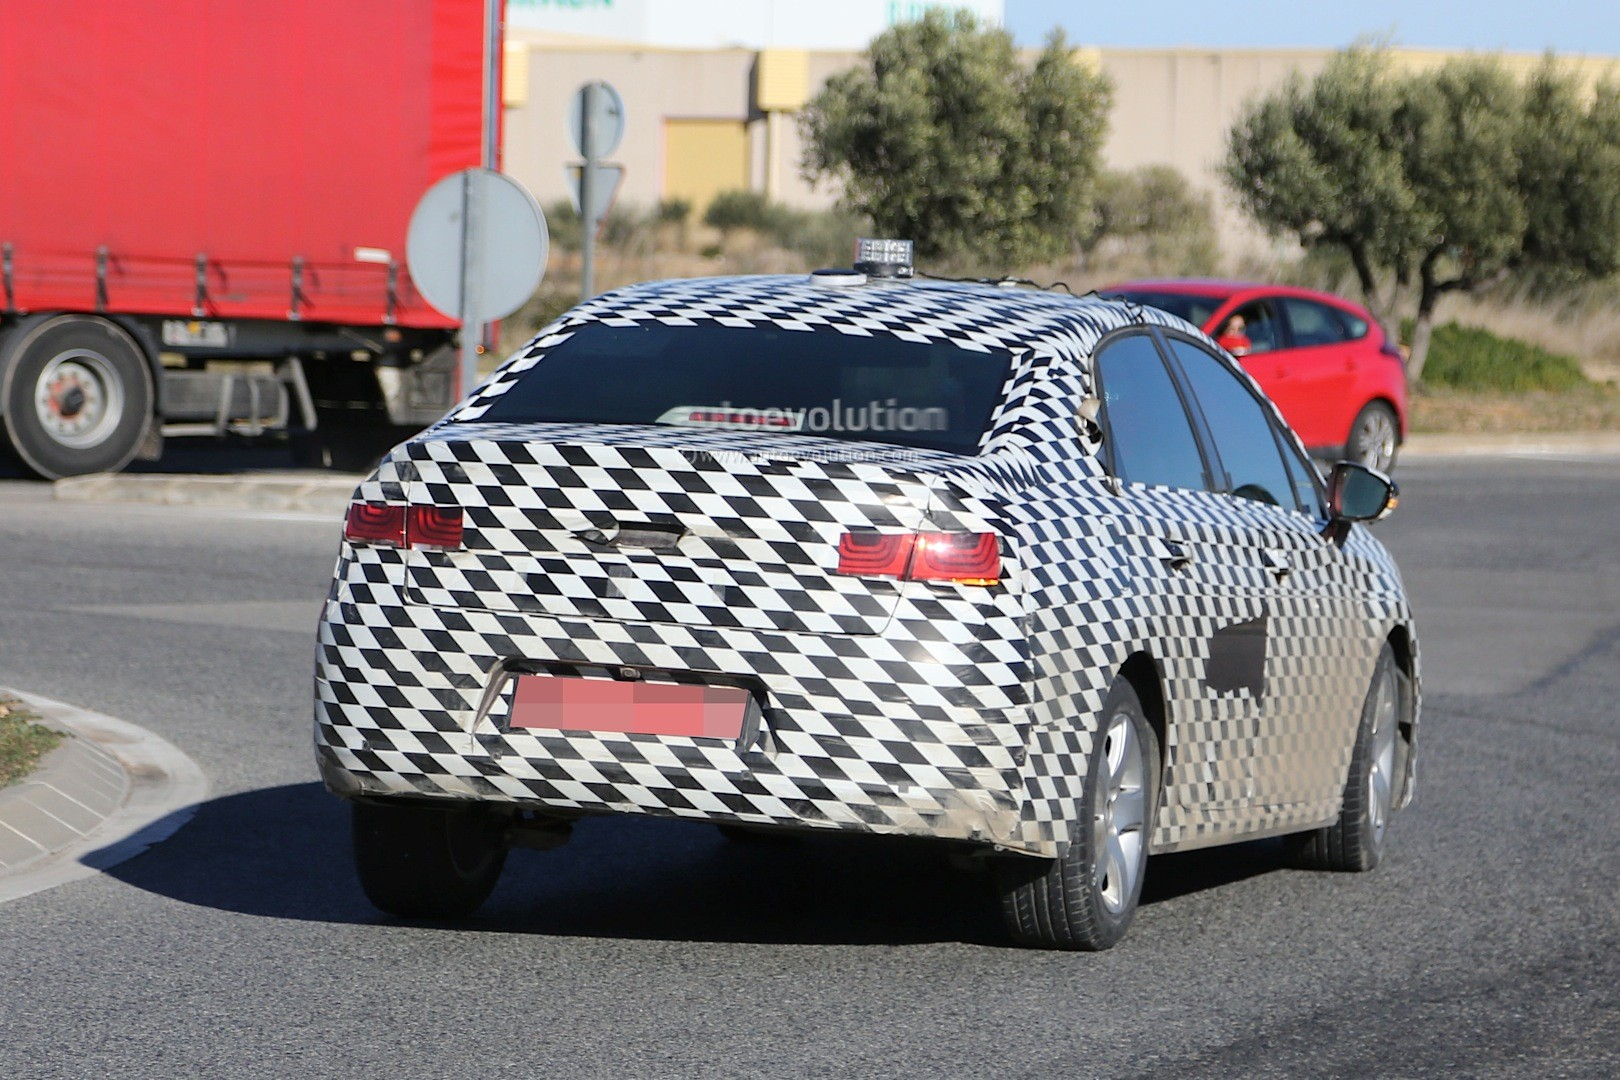 2015 - [Citroën] C4 C-Quatre - Page 2 Mystery-citroen-compact-sedan-spied-testing-in-spain-could-be-the-new-c4-lunge_7